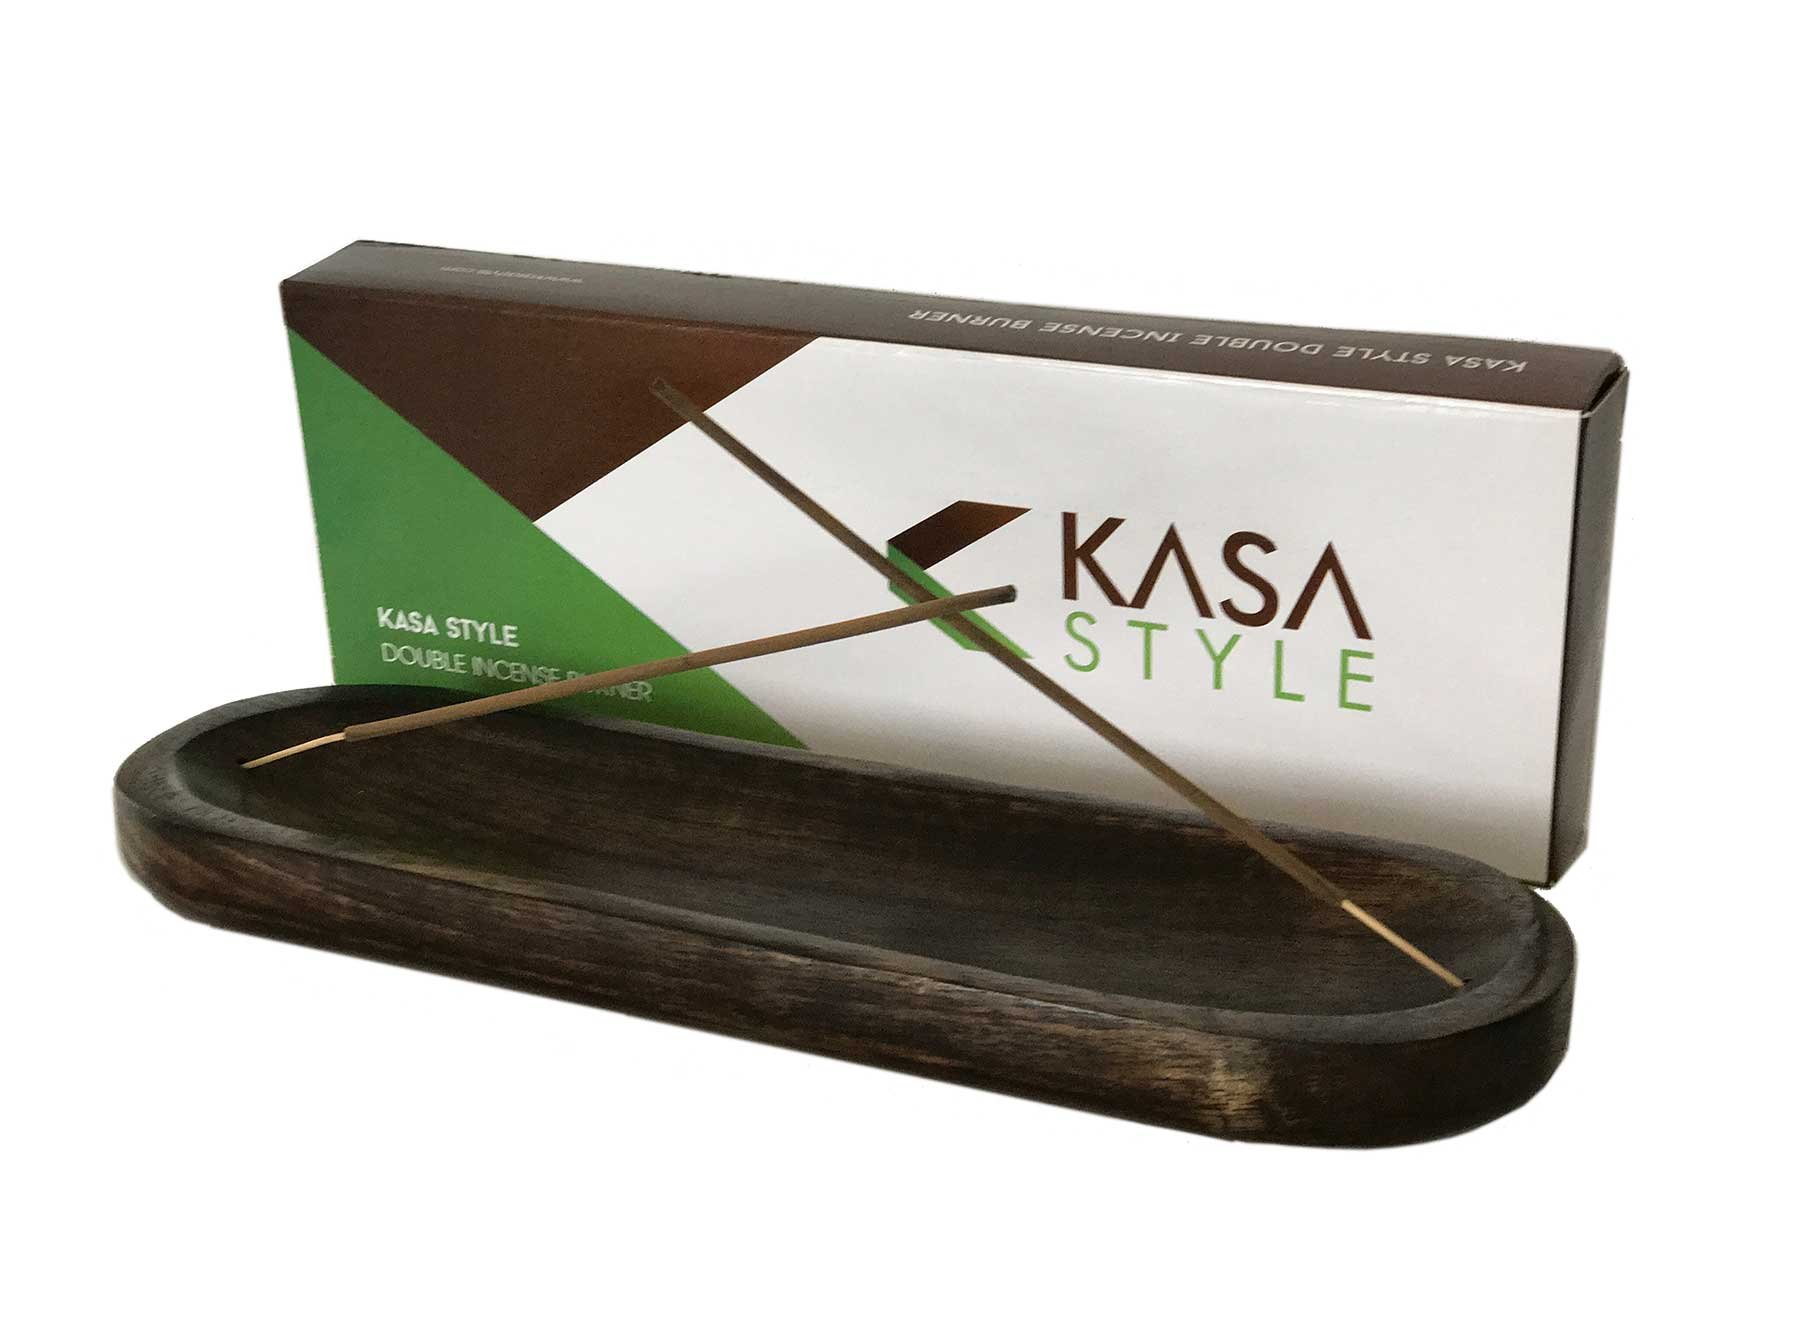 Kasa Style Trough Antique Wood Hand Made Double Incense Burner Ash Catcher by Kasa Style (Image #2)